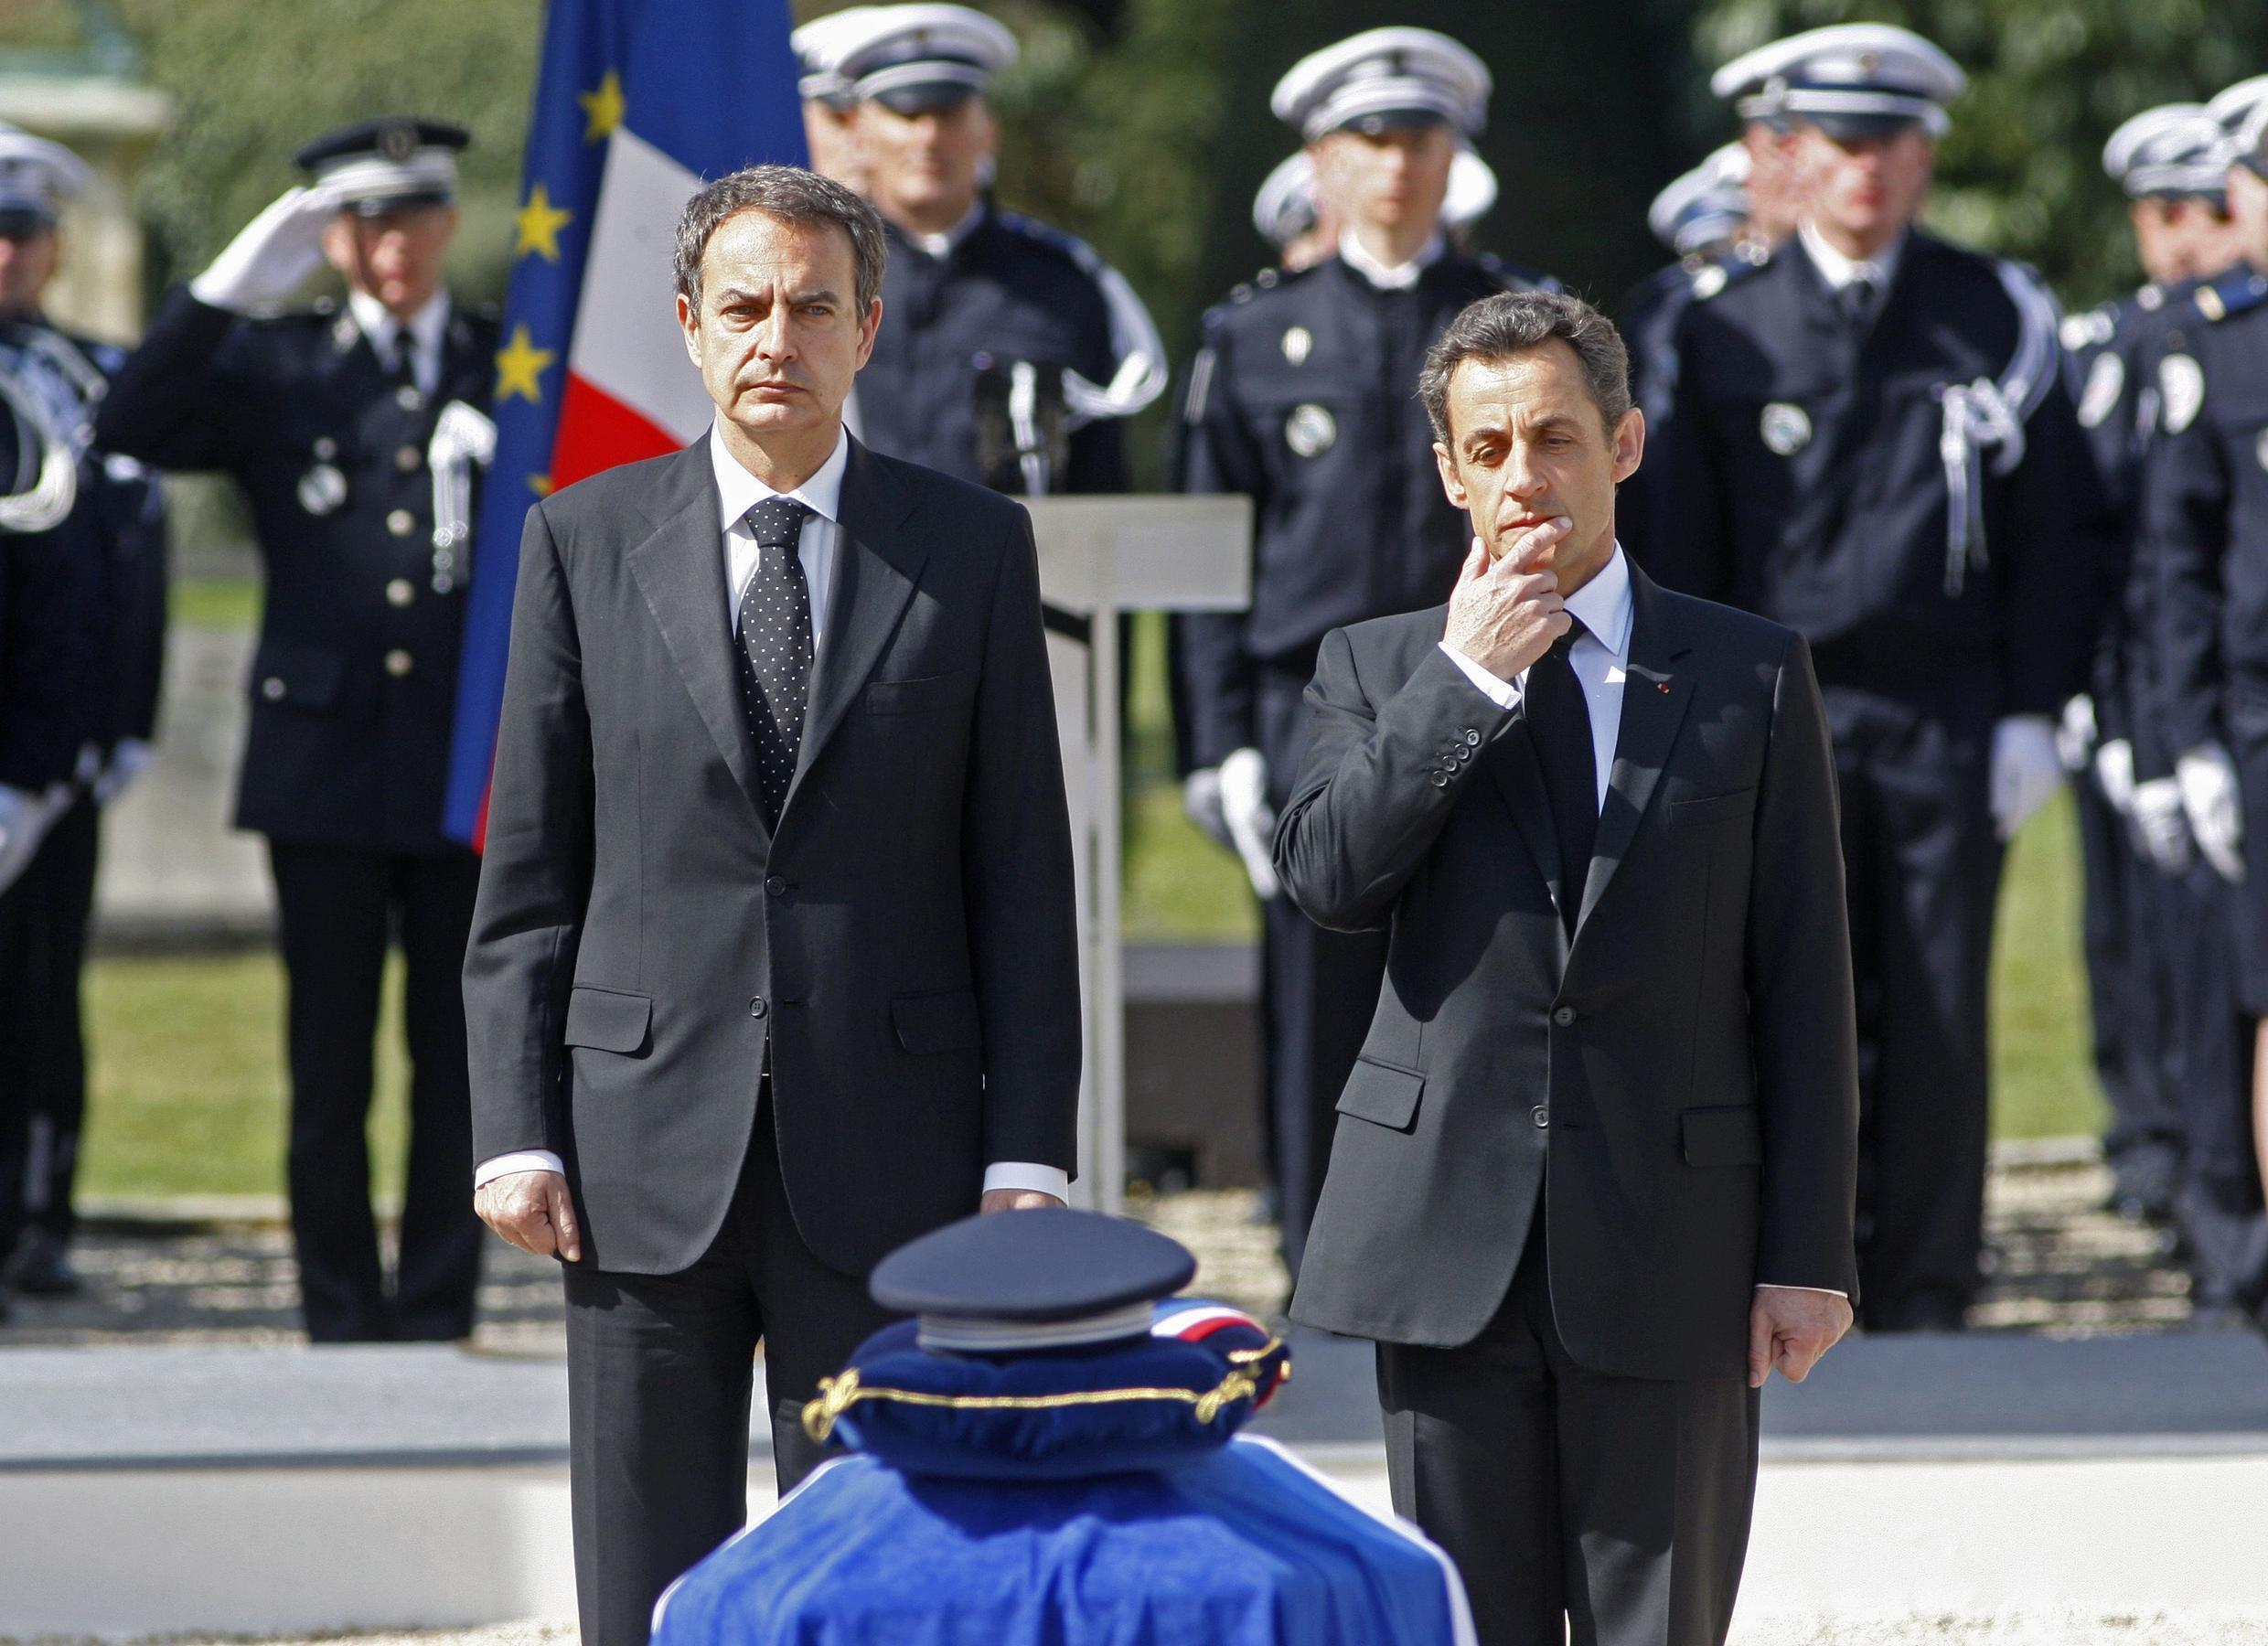 French President Nicolas Sarkozy (r) and Spanish Prime Minister Jose Luis Rodriguez Zapatero (l) at the memorial service of Jean-Serge Nérin on 23 March, 2010.